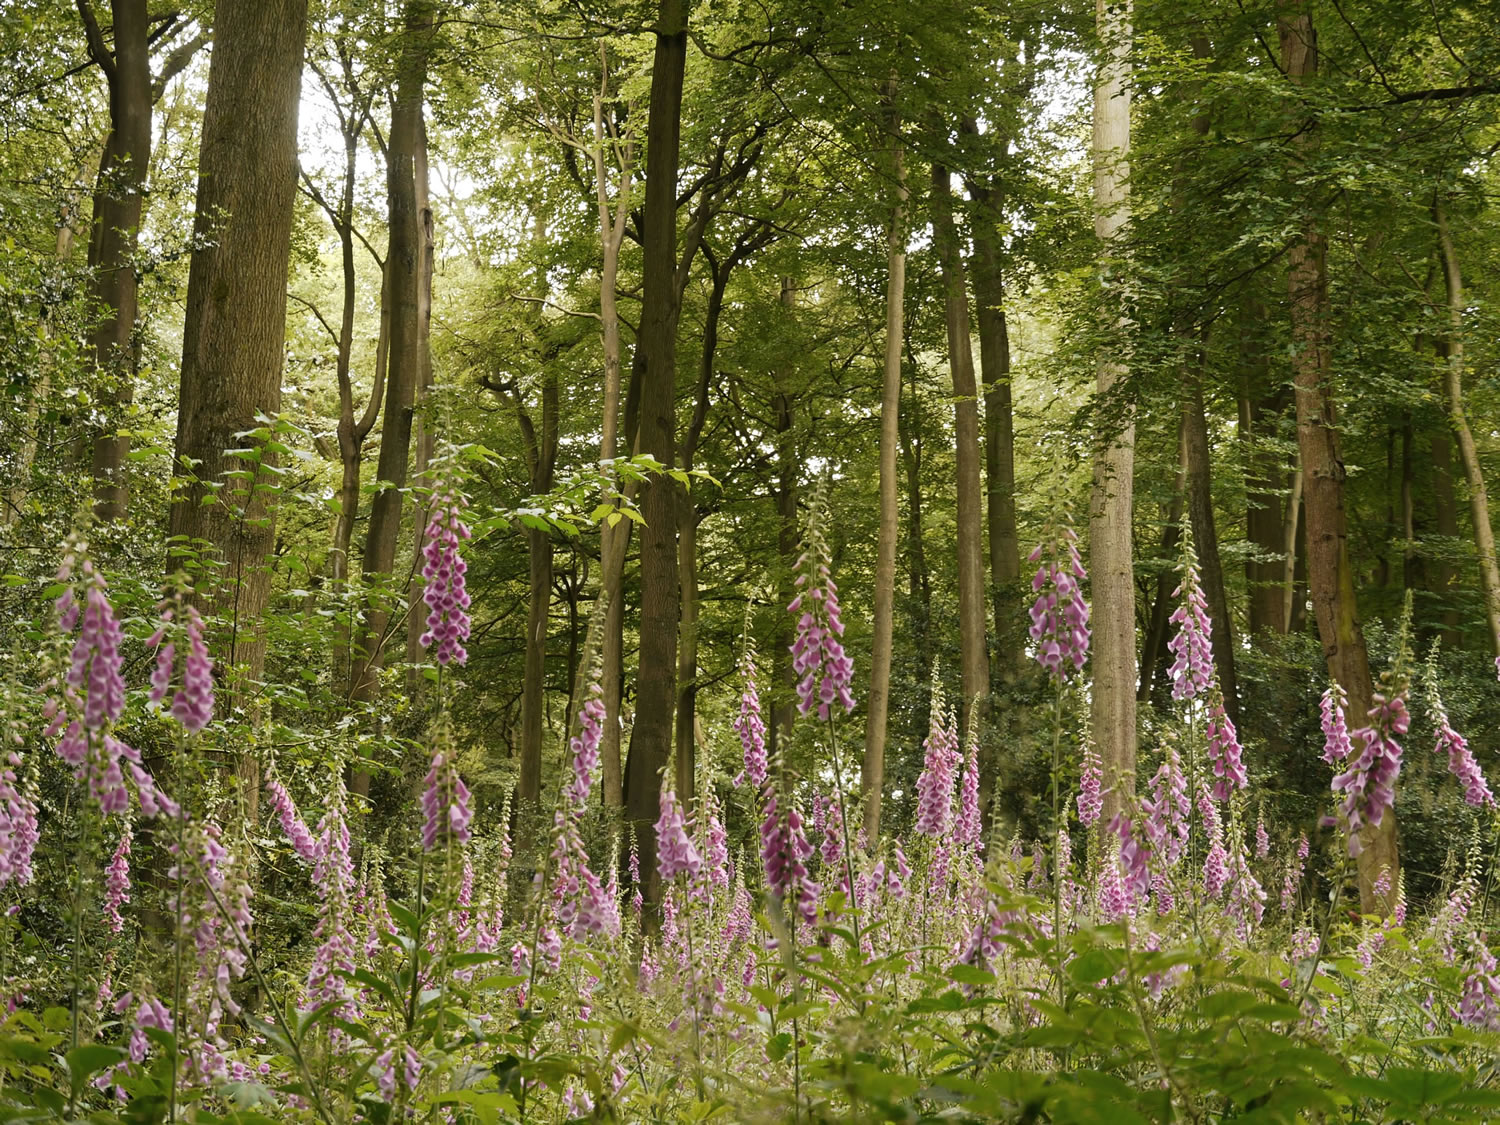 Foxgloves apear in abundance for a couple of years after tree thinning having lain dormant for decades